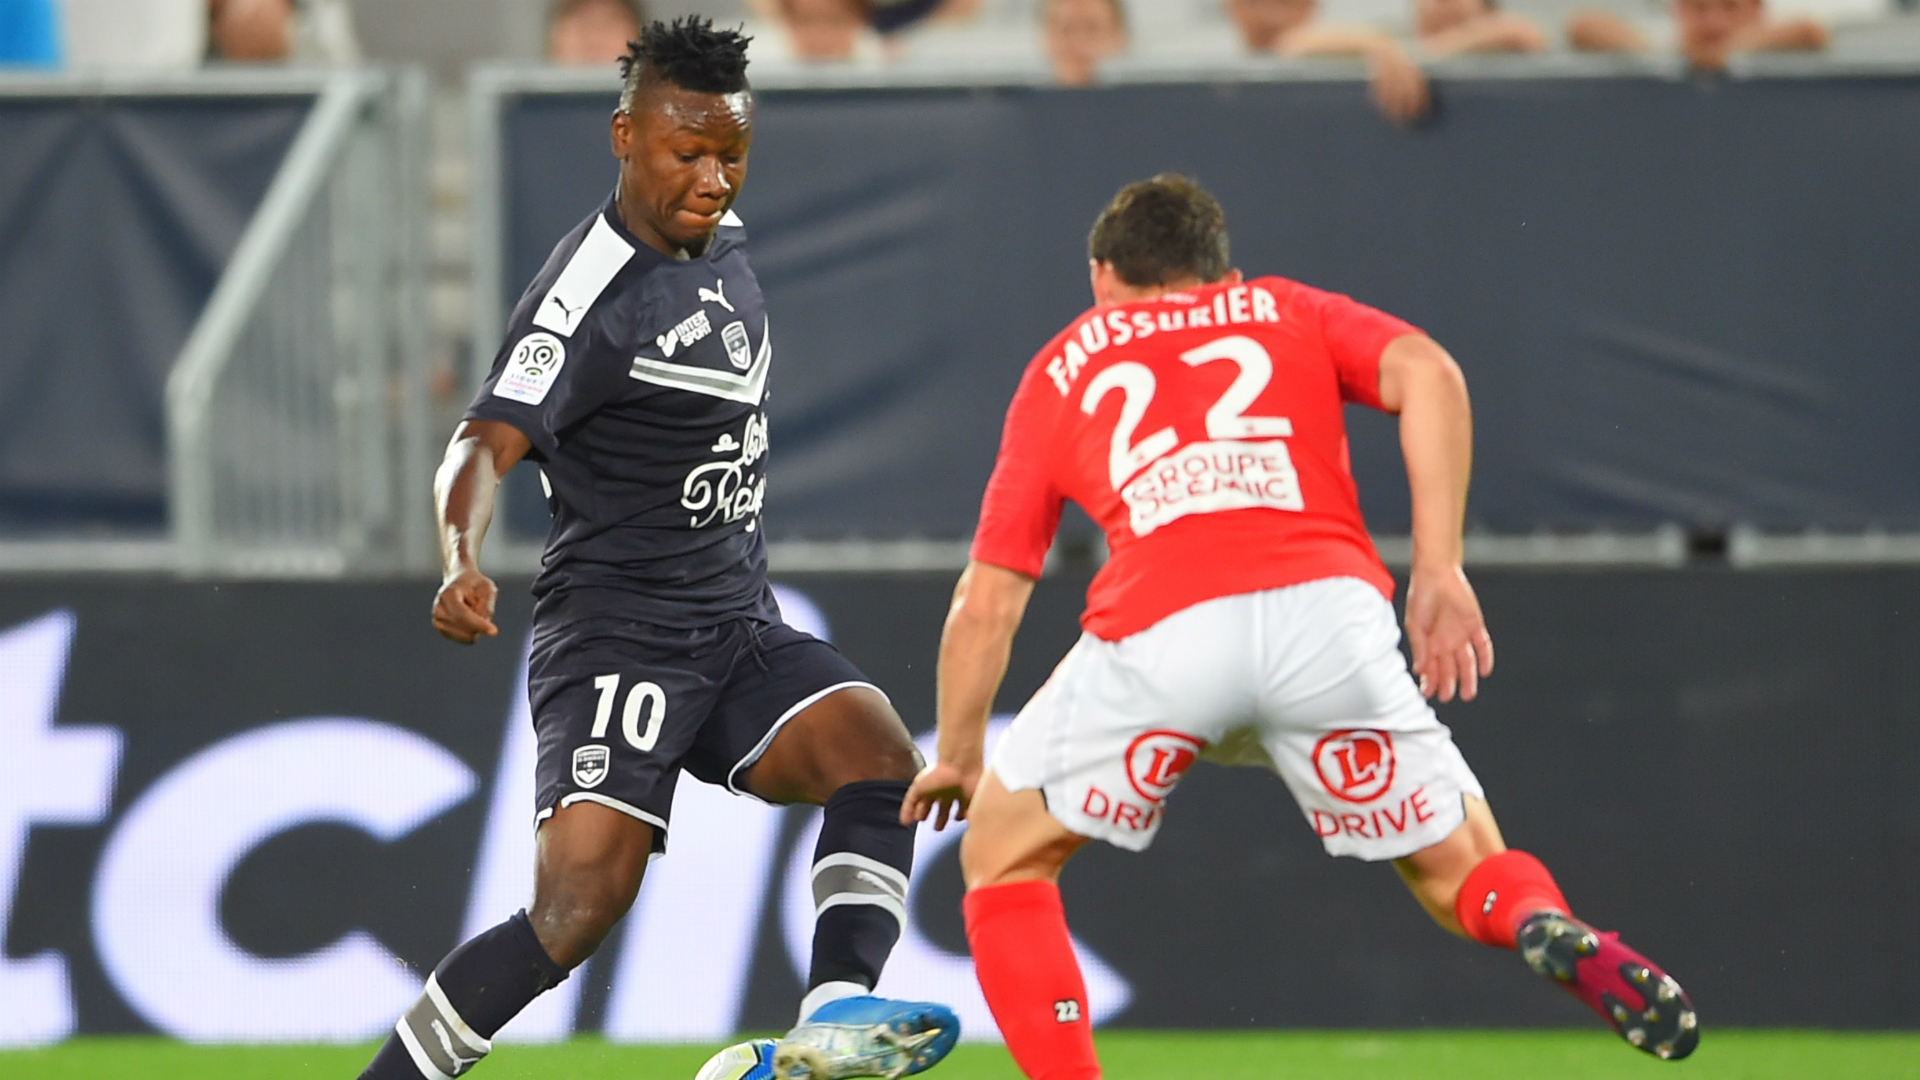 Kalu and Toko Ekambi score as Lyon edge past Bordeaux